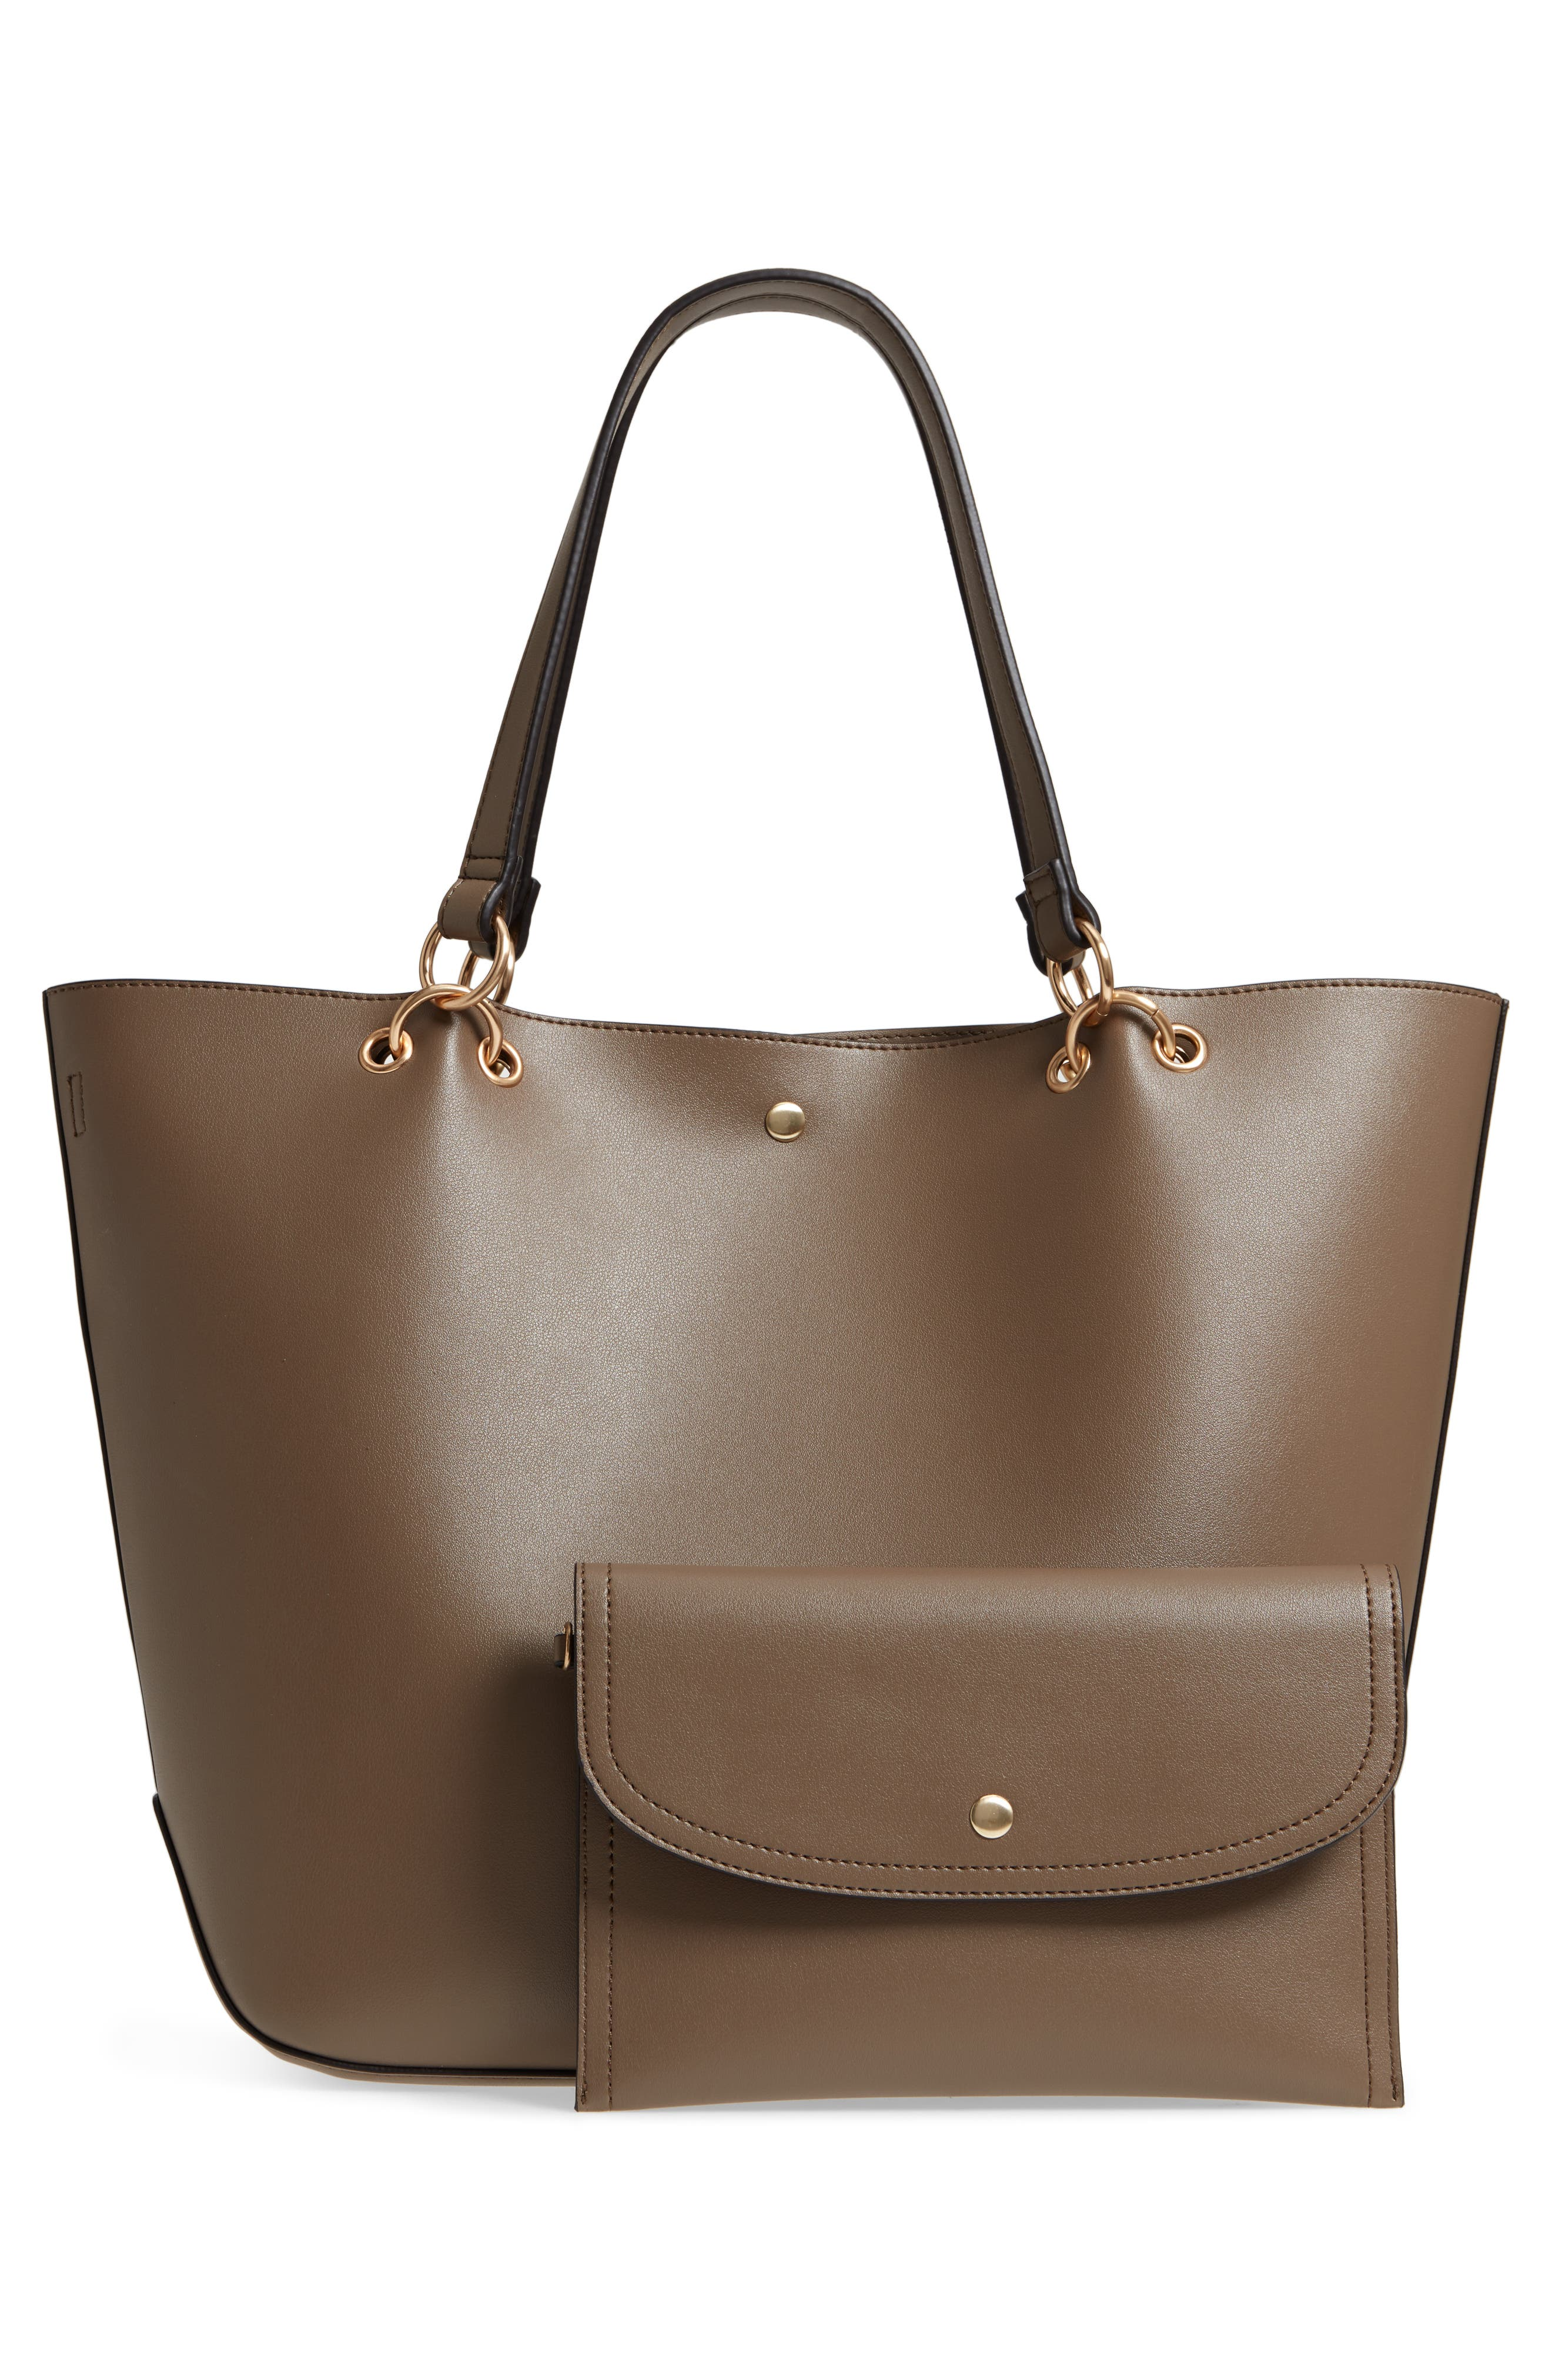 Fronto Faux Leather Tote,                             Alternate thumbnail 3, color,                             281